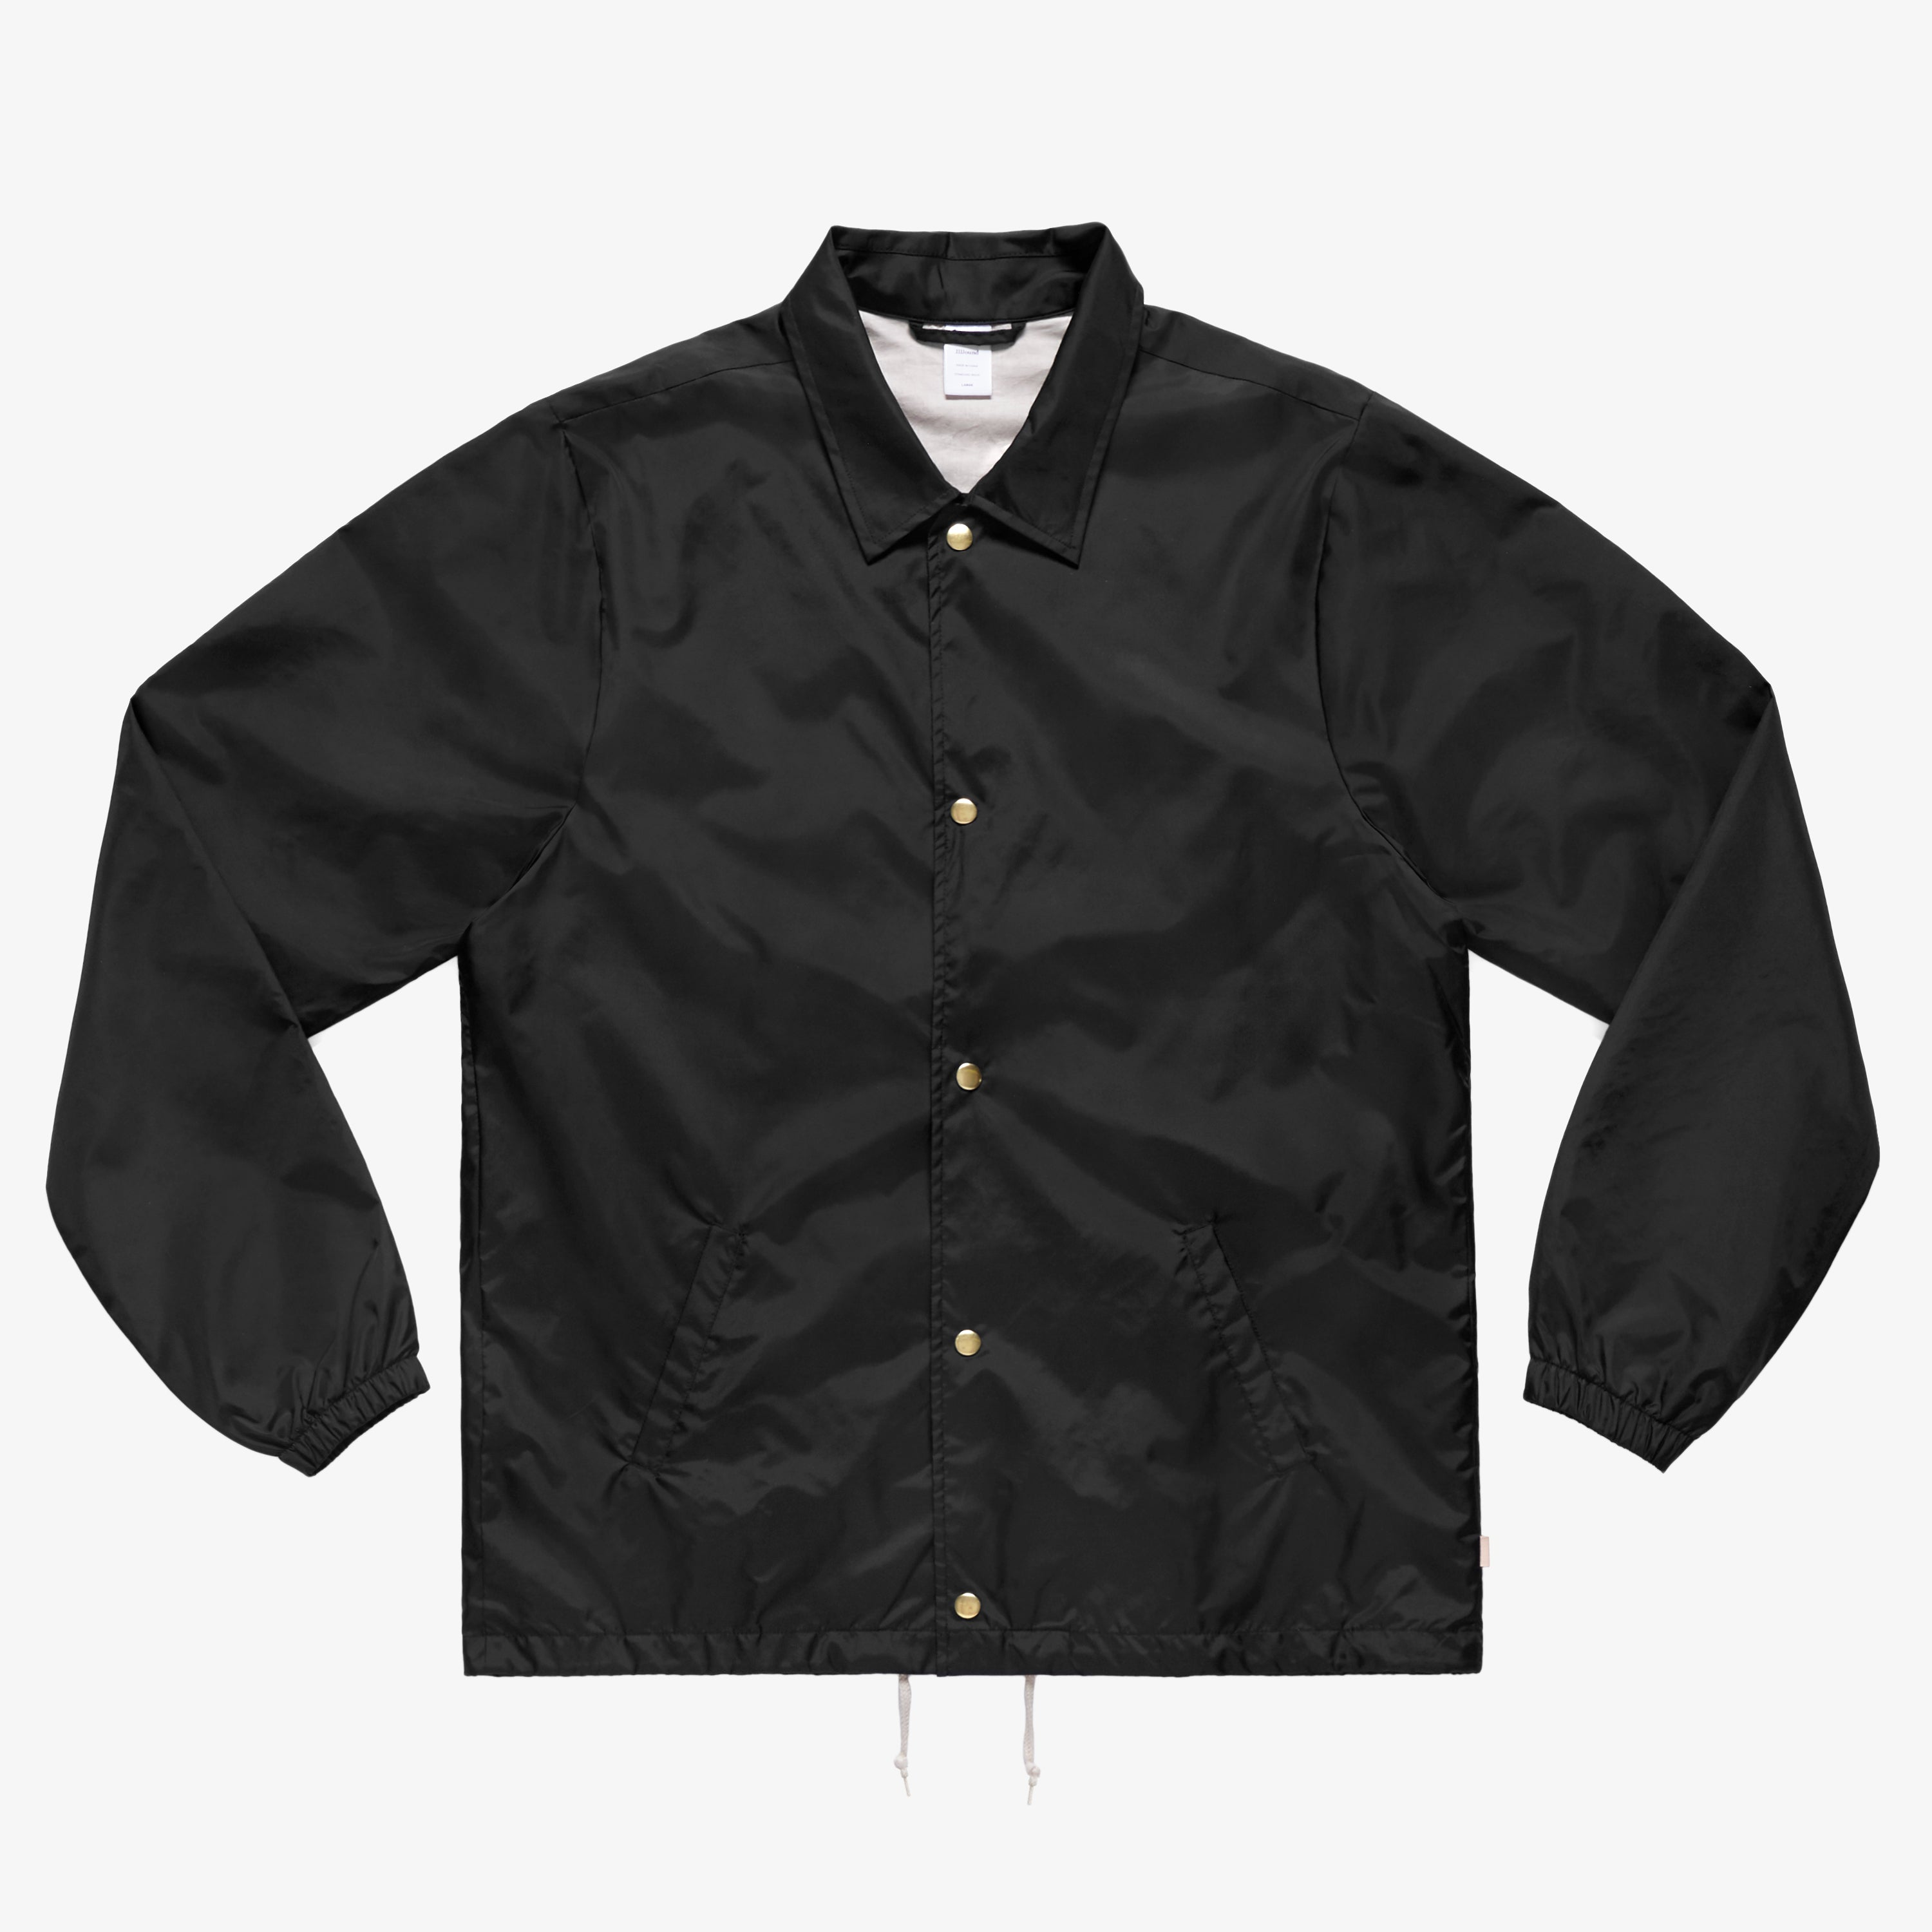 Coach Jacket - Black